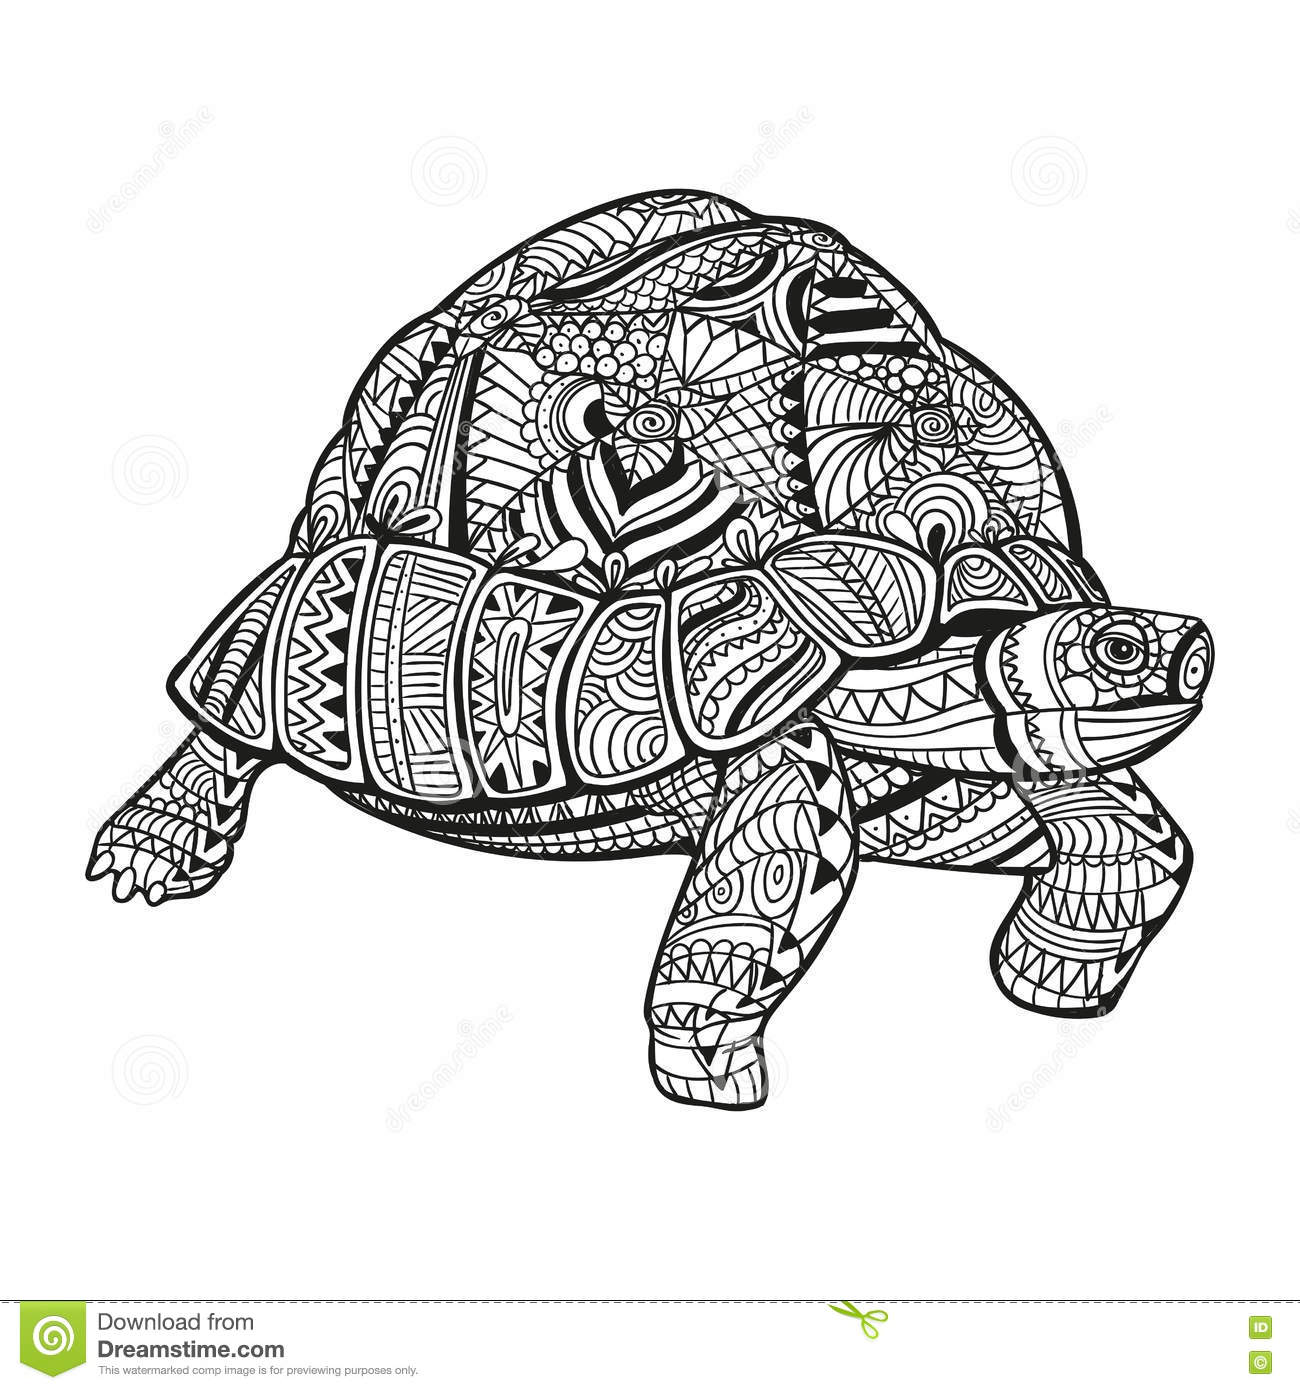 Abstract Turtle Coloring Pages : Abstract ornamental turtle stock illustration